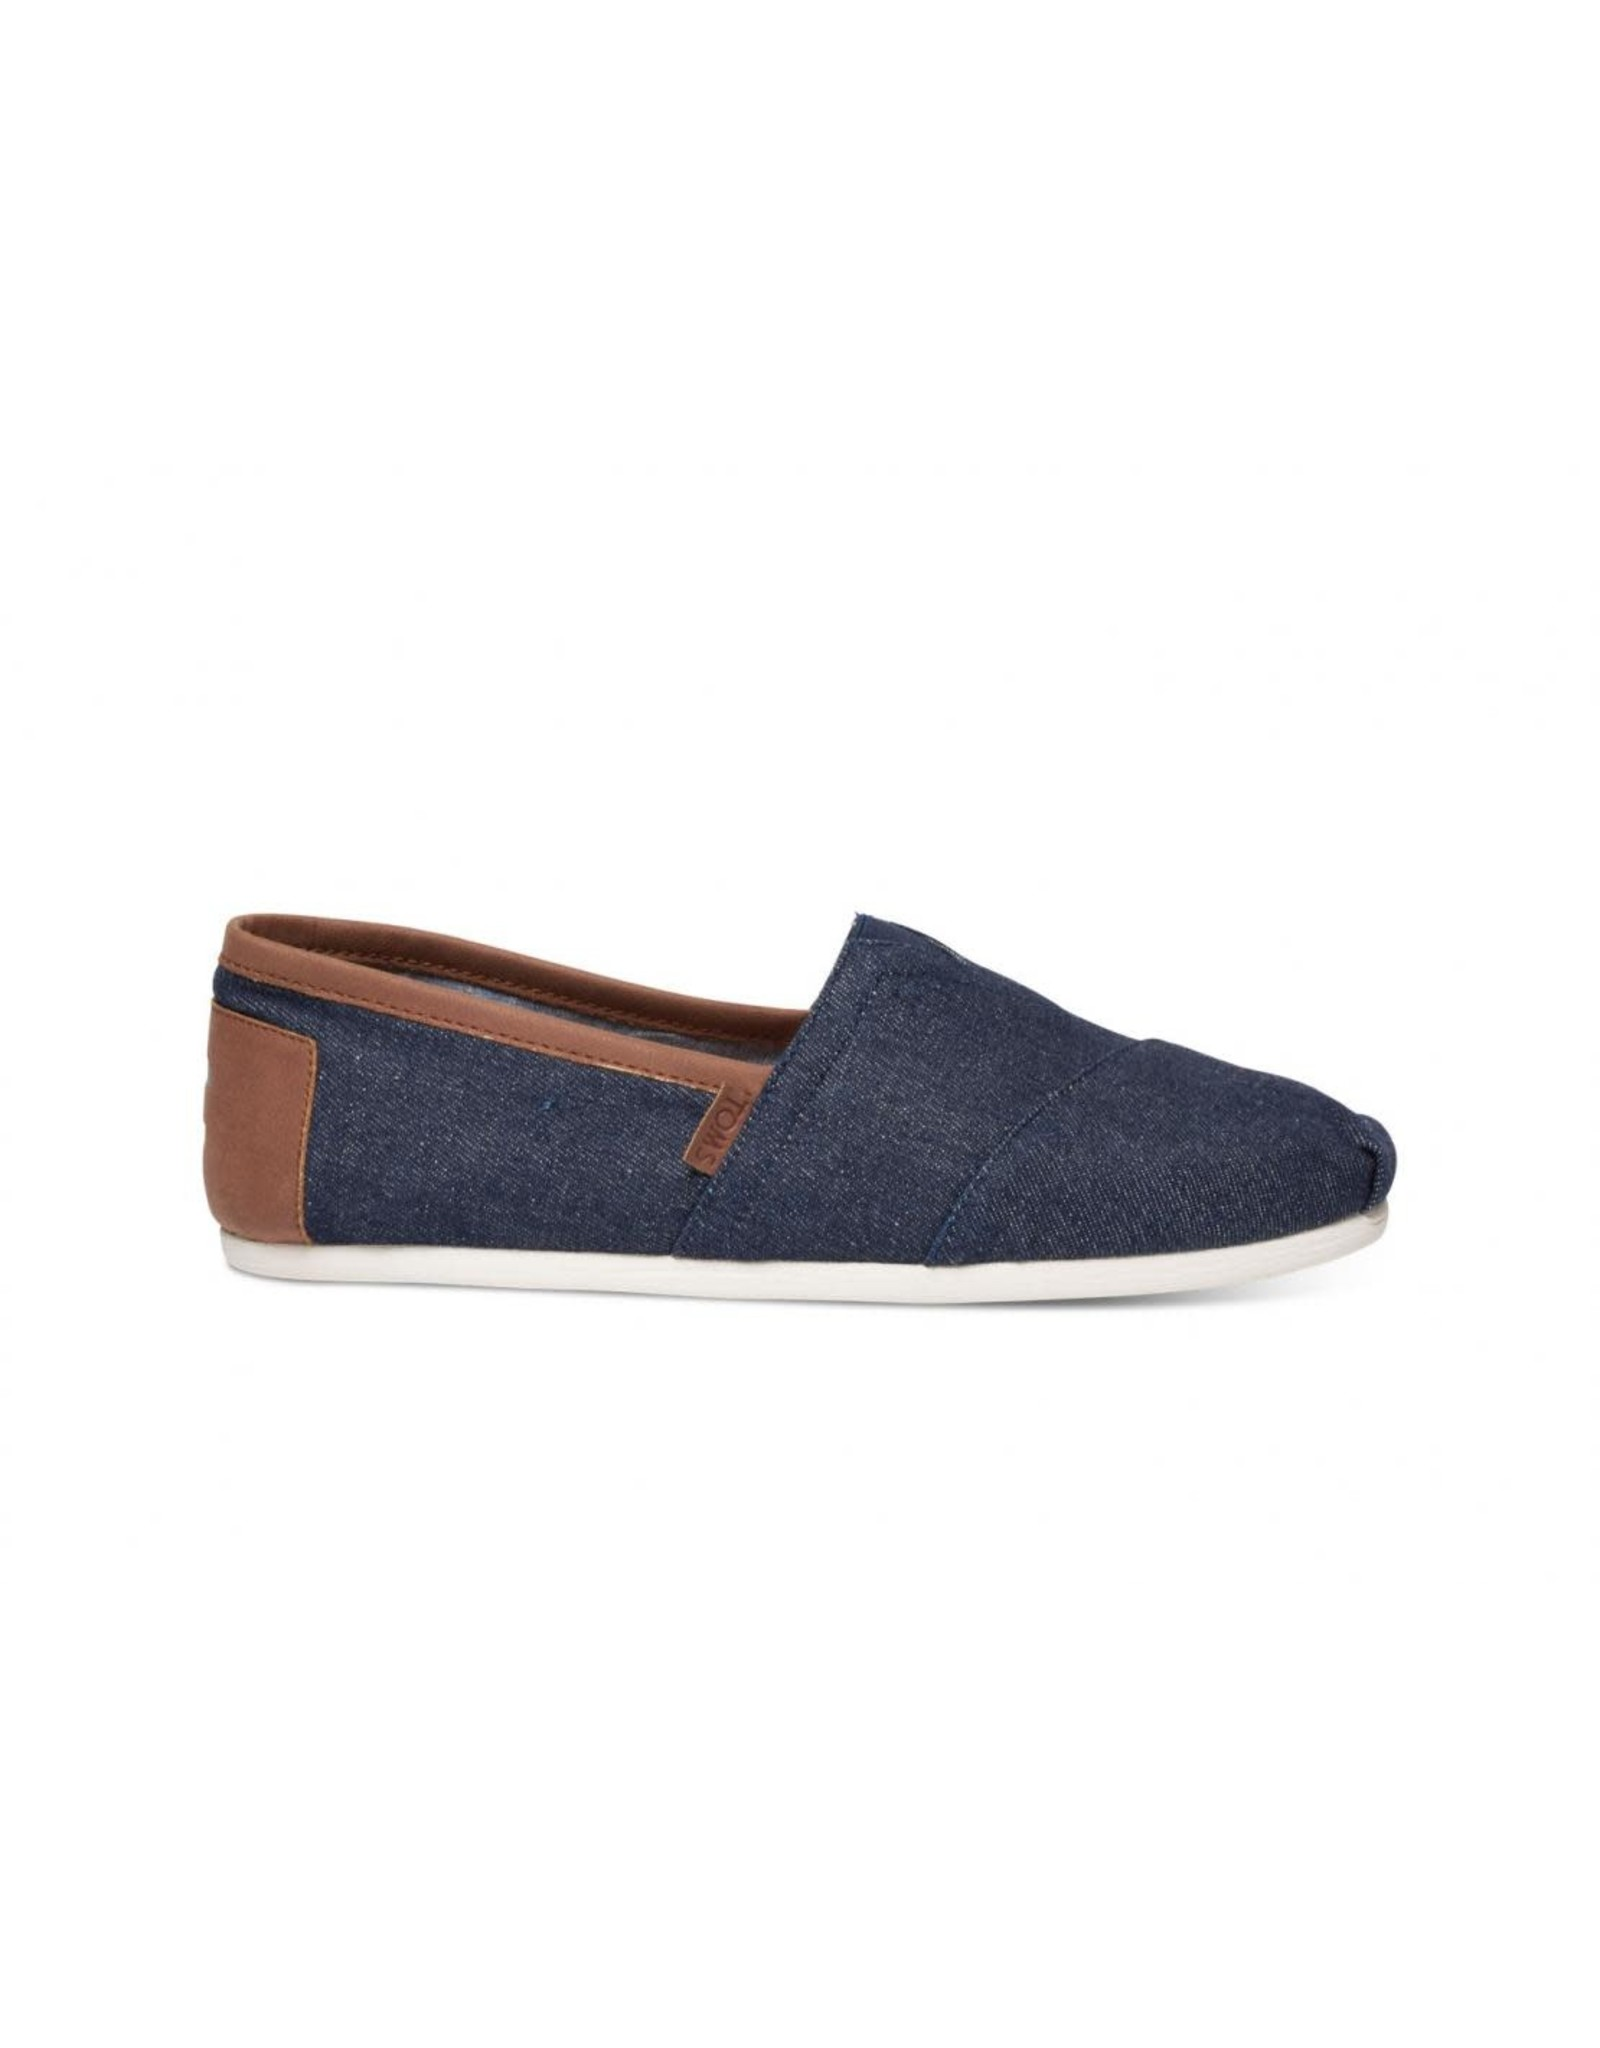 Toms - soulier classic synthetic leather